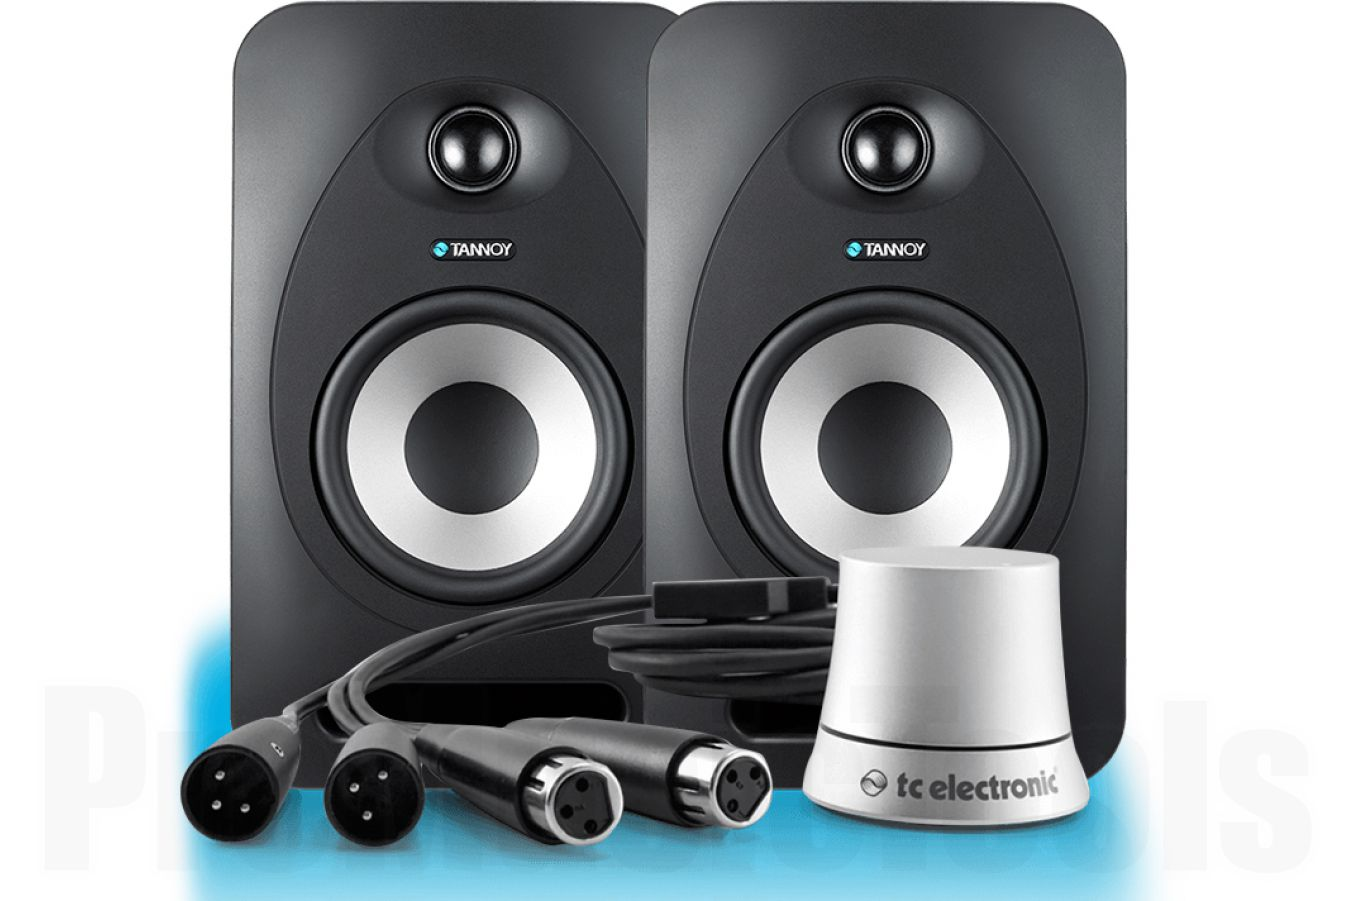 Tannoy Reveal 402 Active - PAIR BUNDLE SET incl. TC Electronic Level Pilot - b-stock (1x opened box)